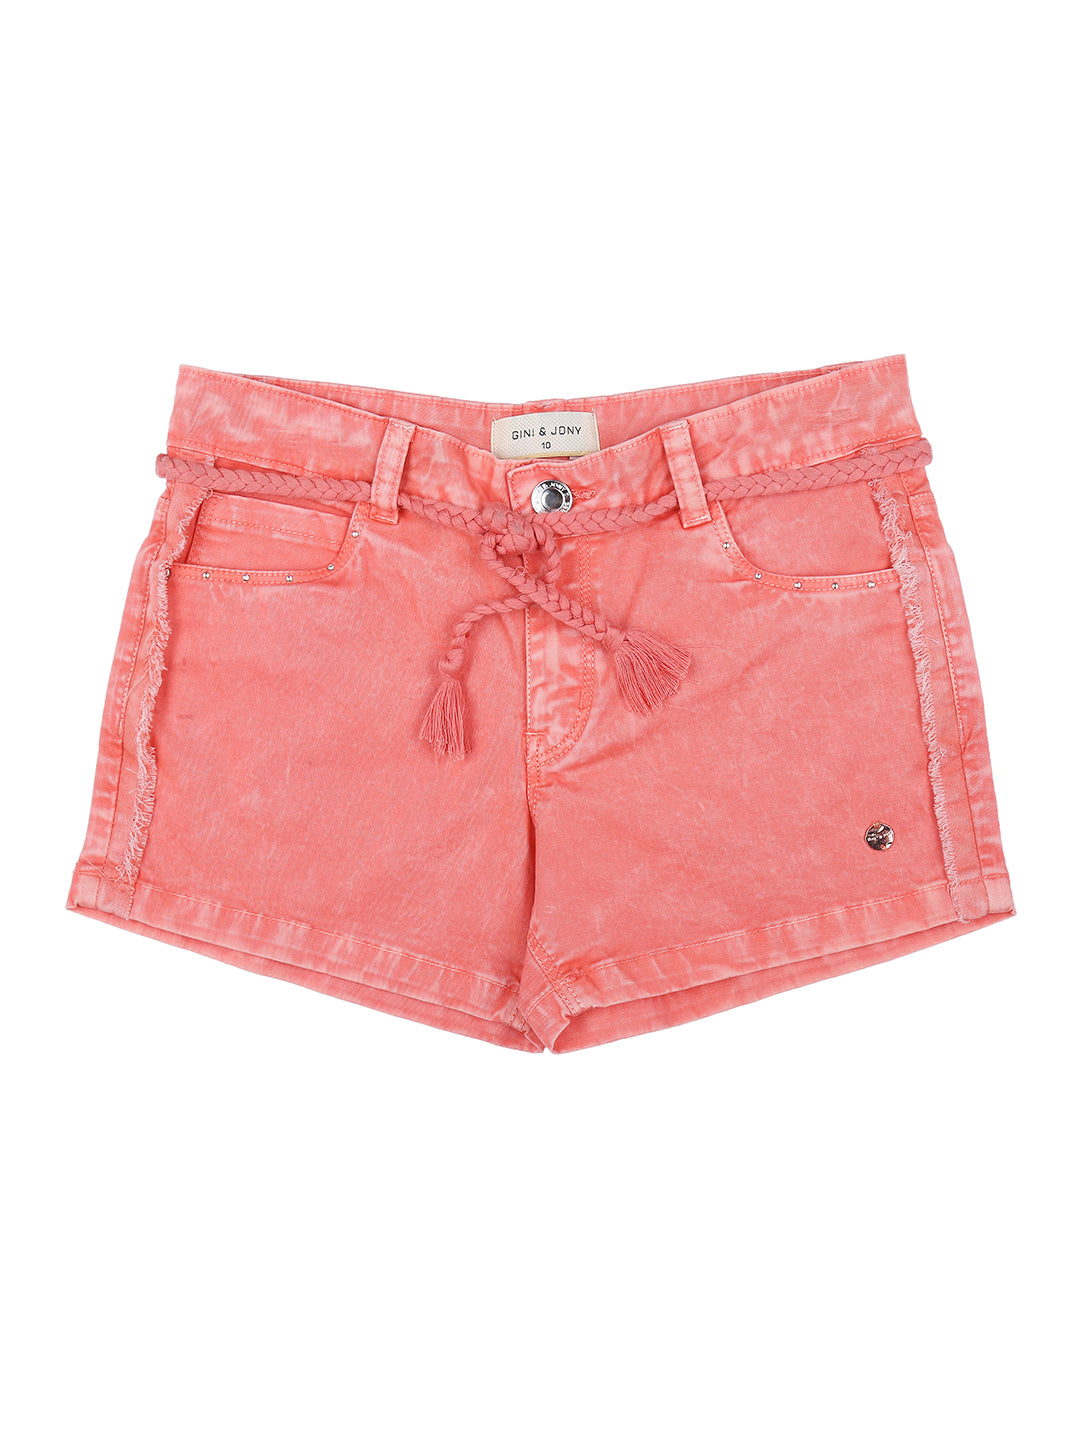 Peach Nectar Shorts